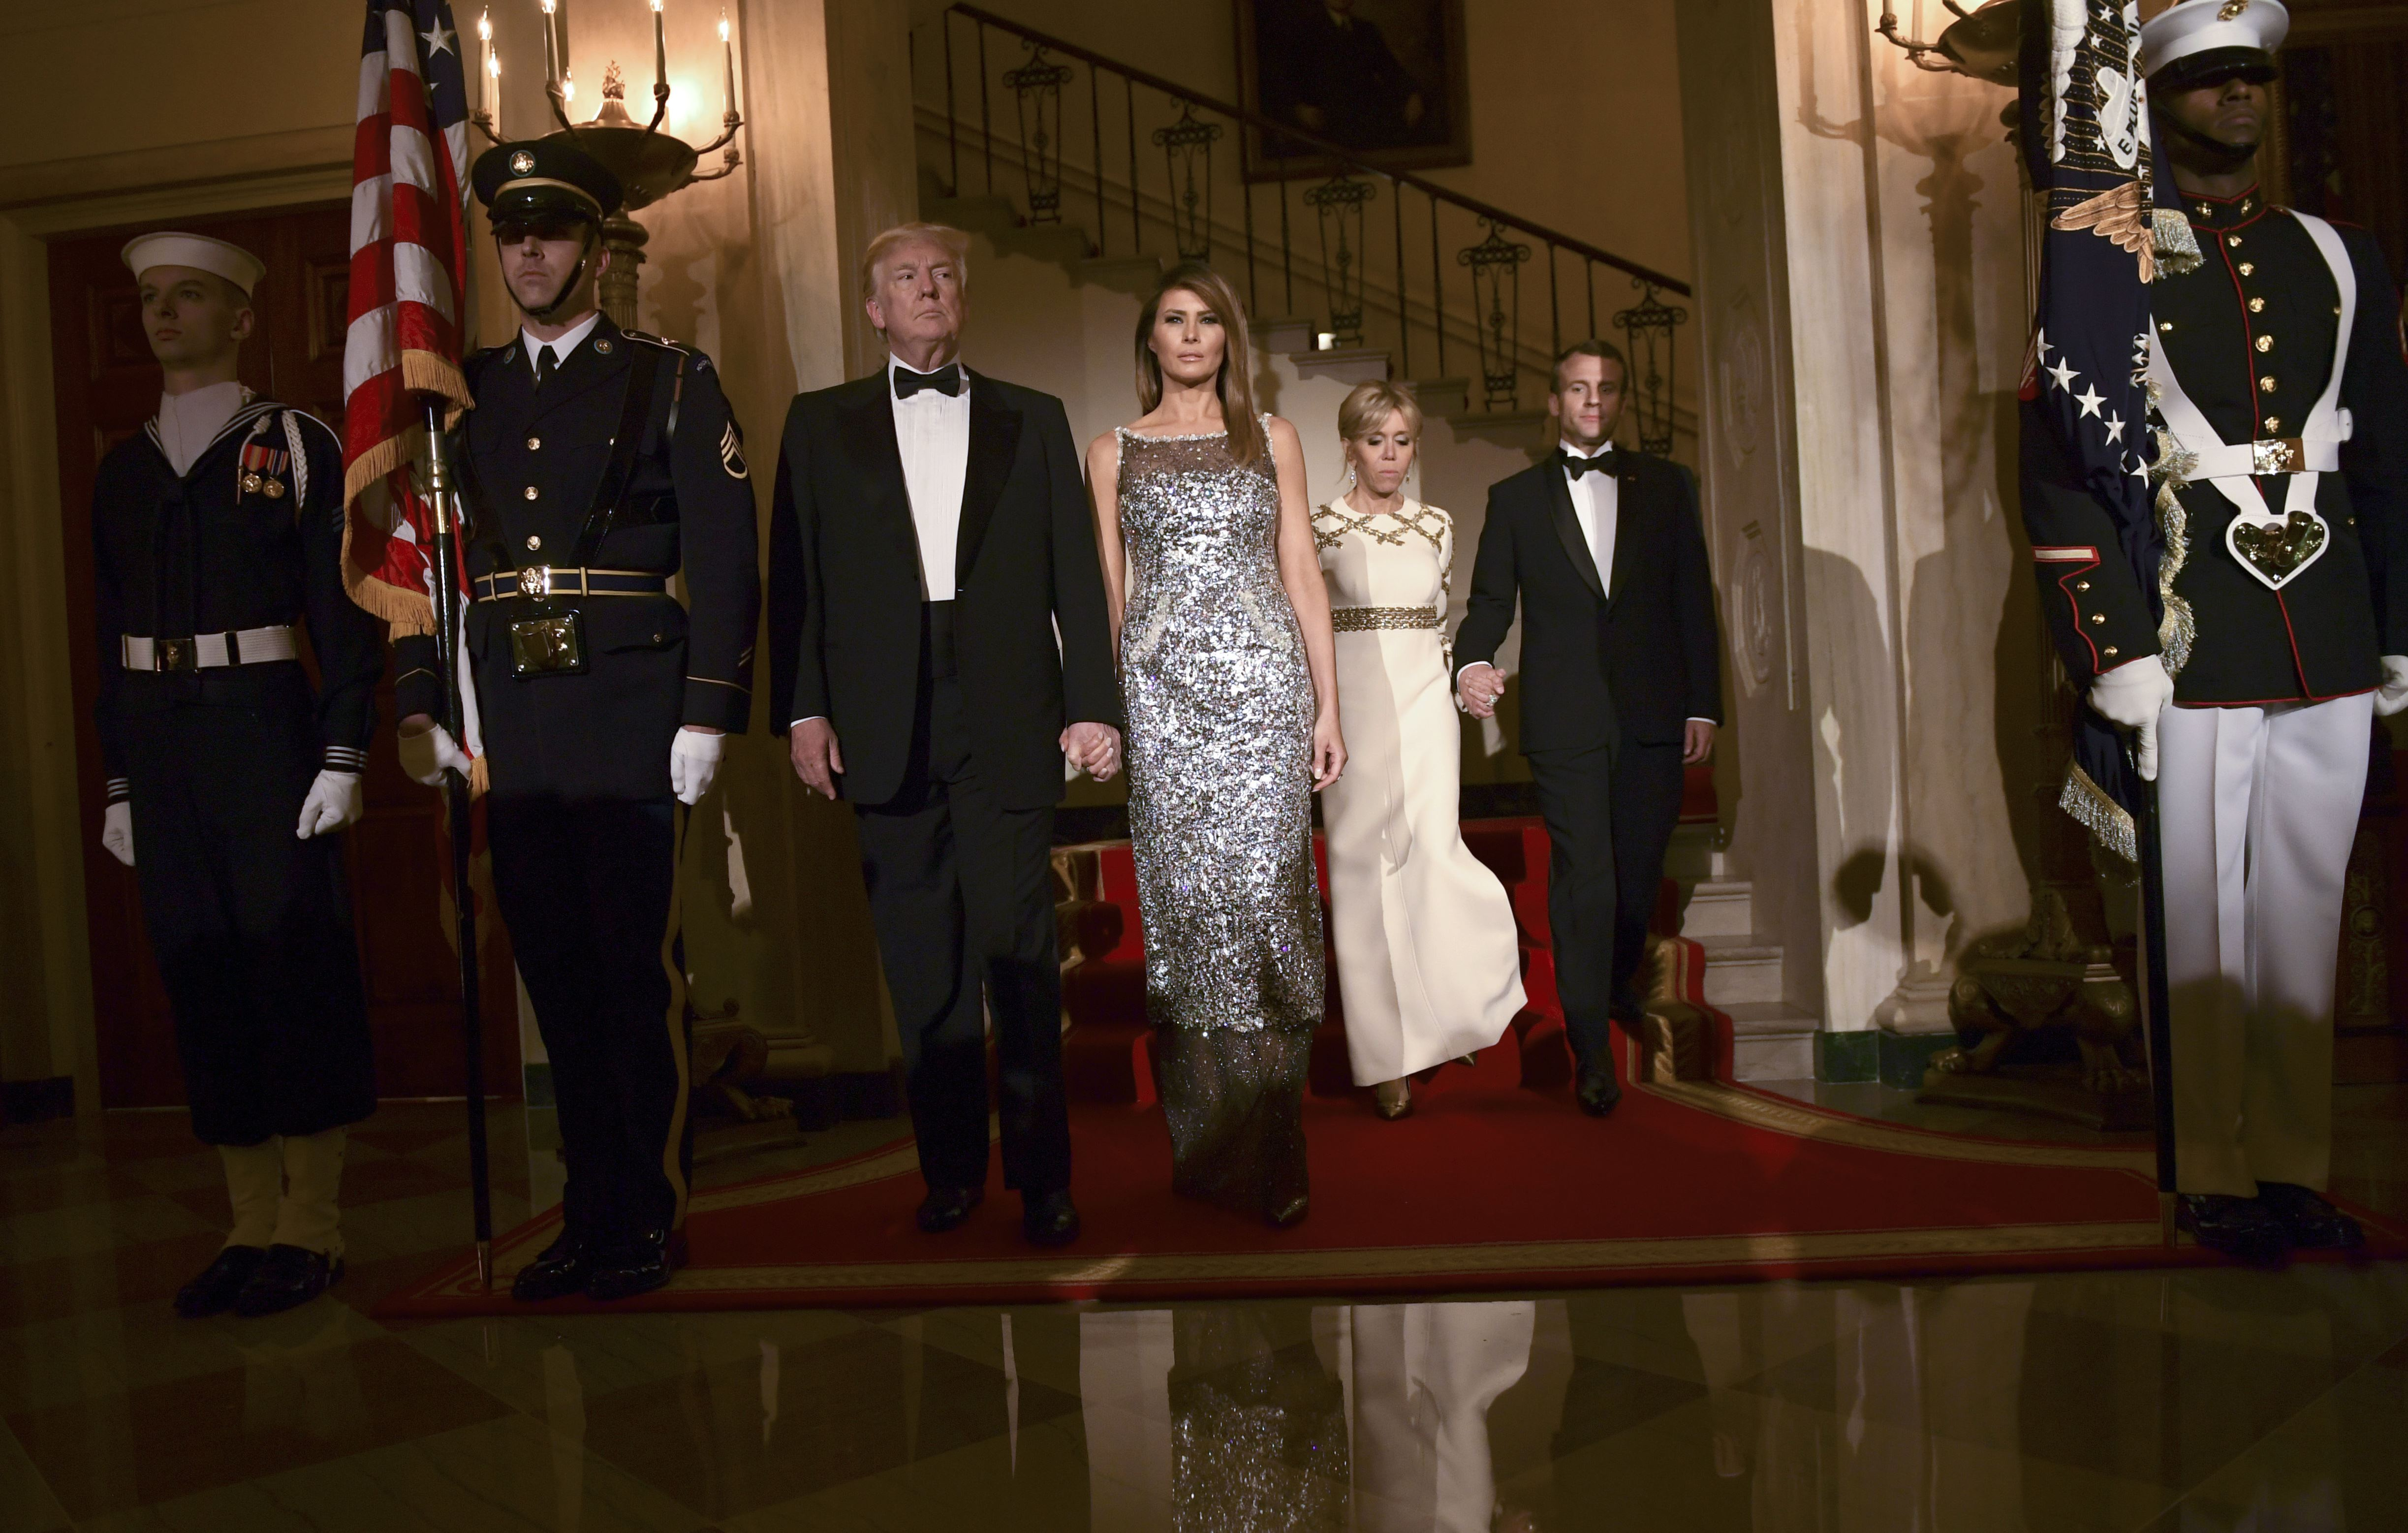 'Incredible' Melania Wins Praise for Trump's First State Dinner